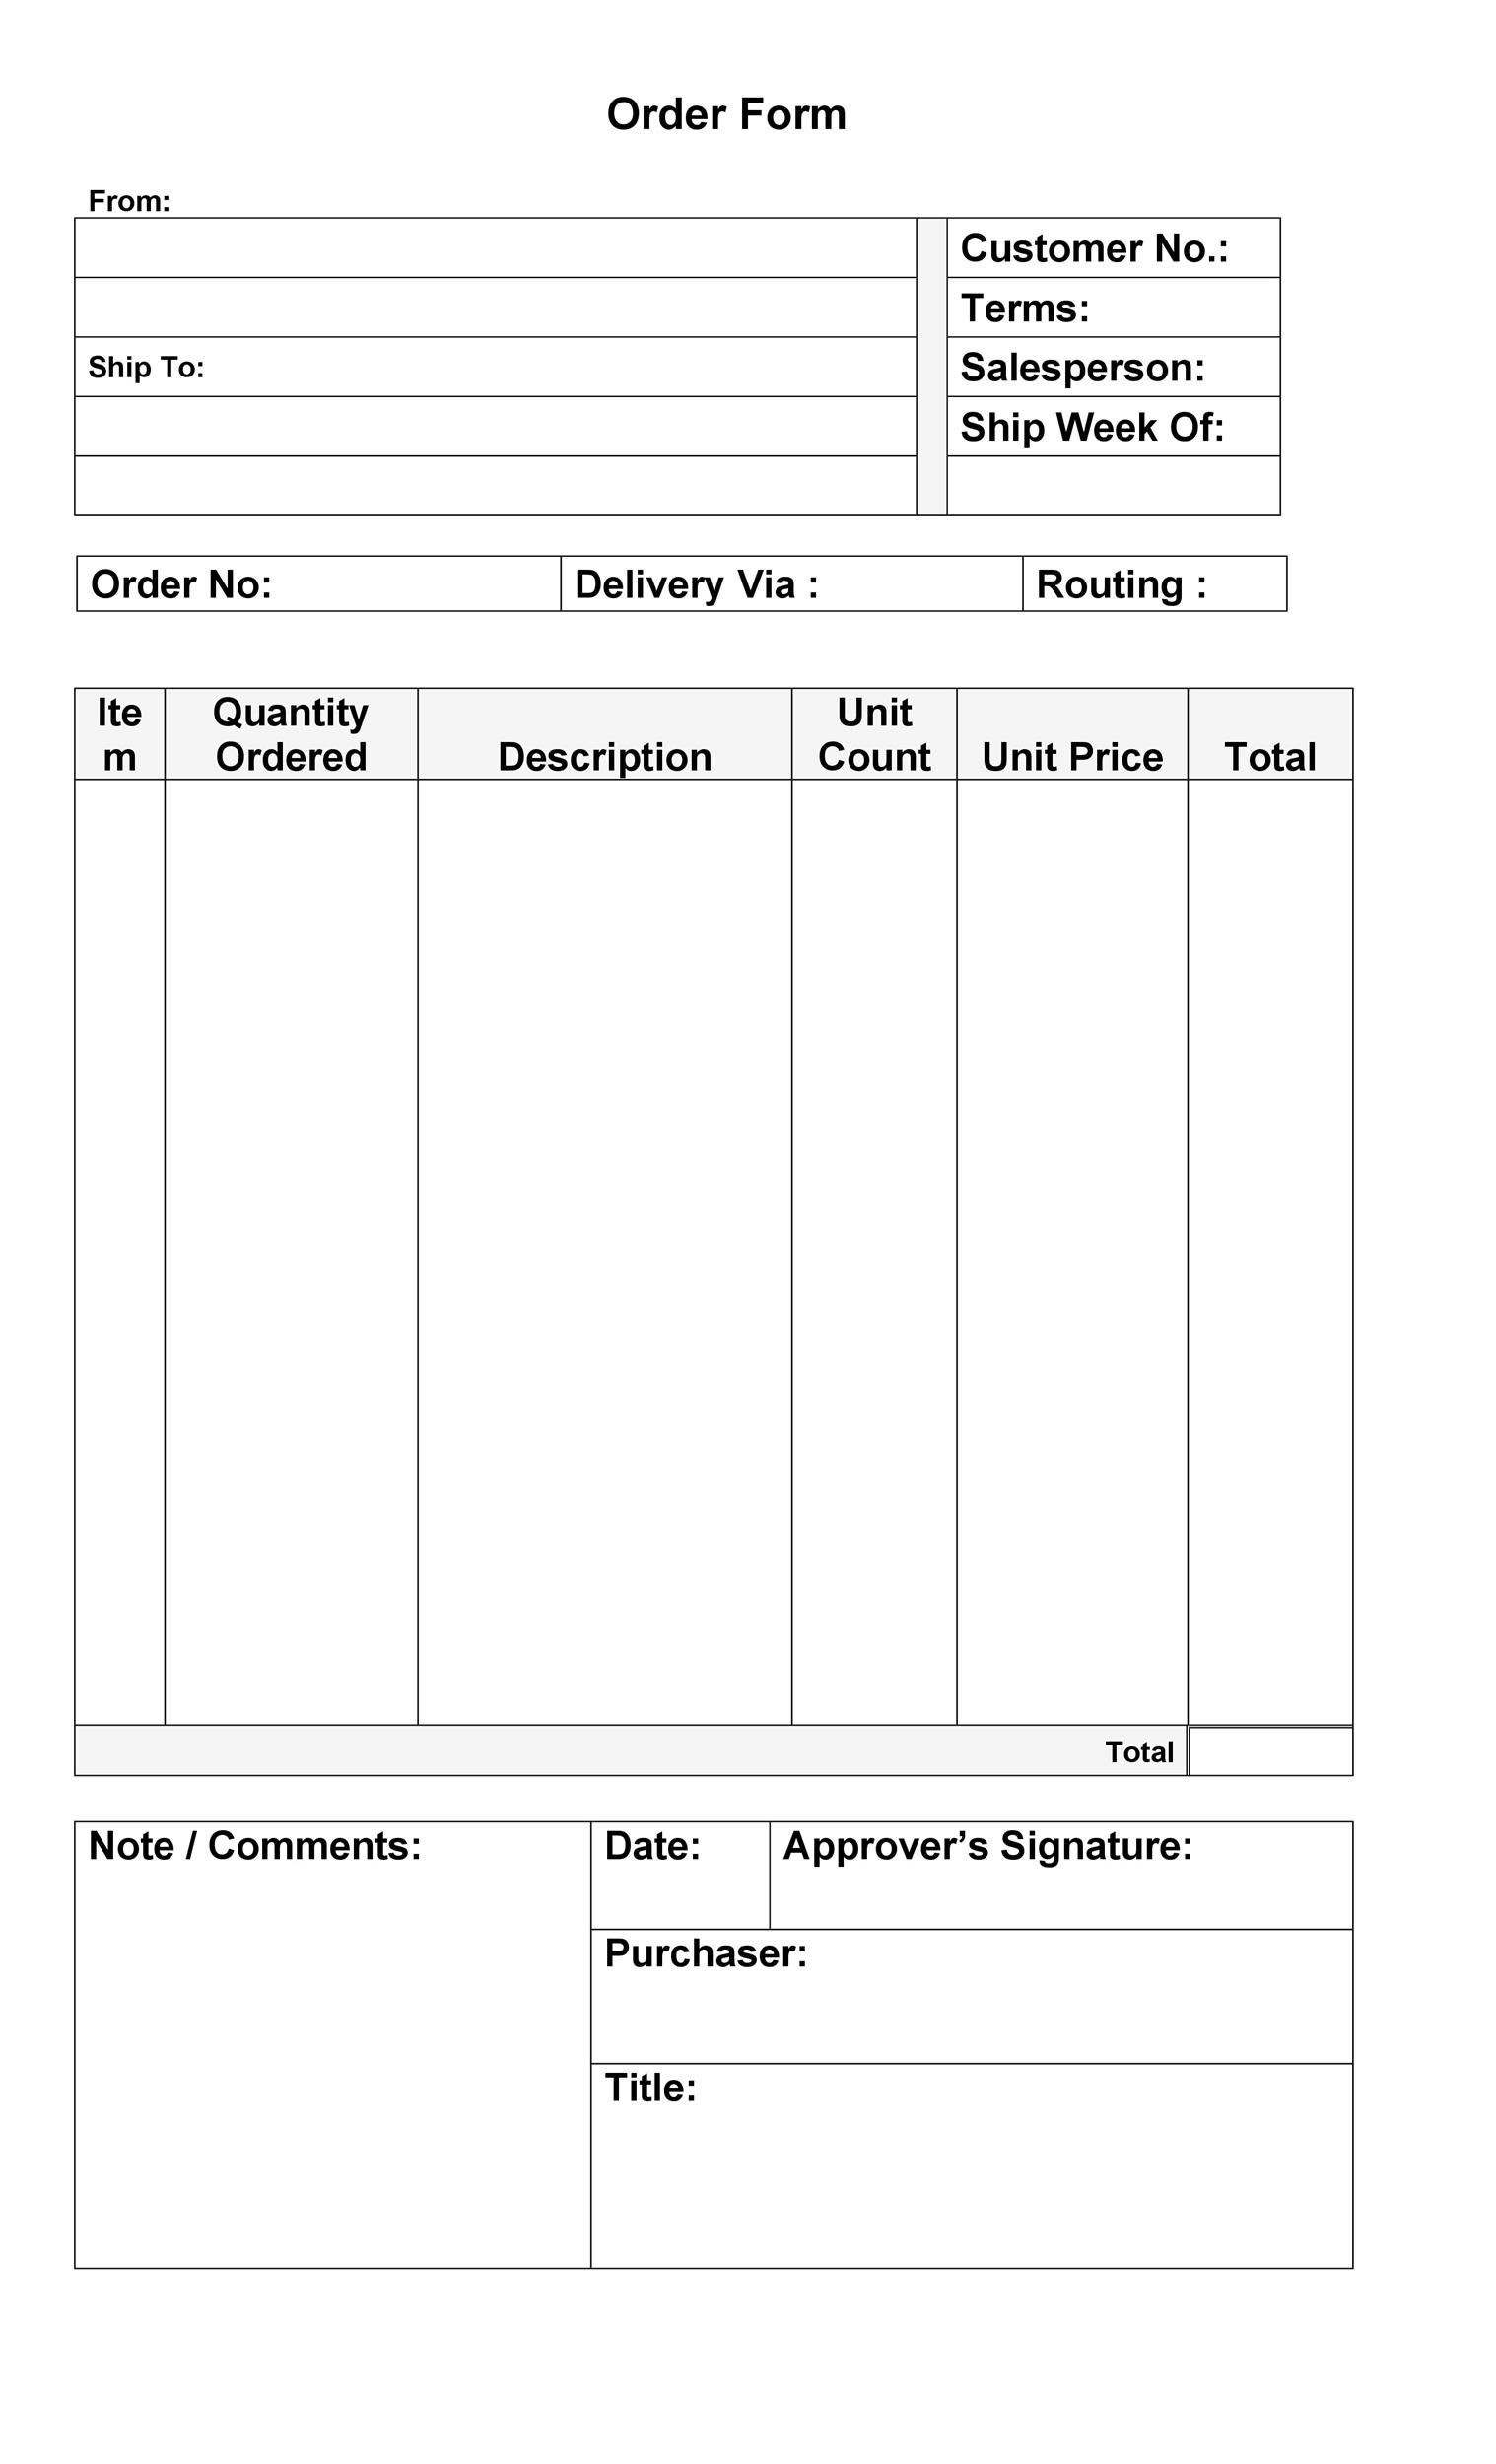 007 Fearsome Free Order Form Template Word High Def  T Shirt Job Application RegistrationFull